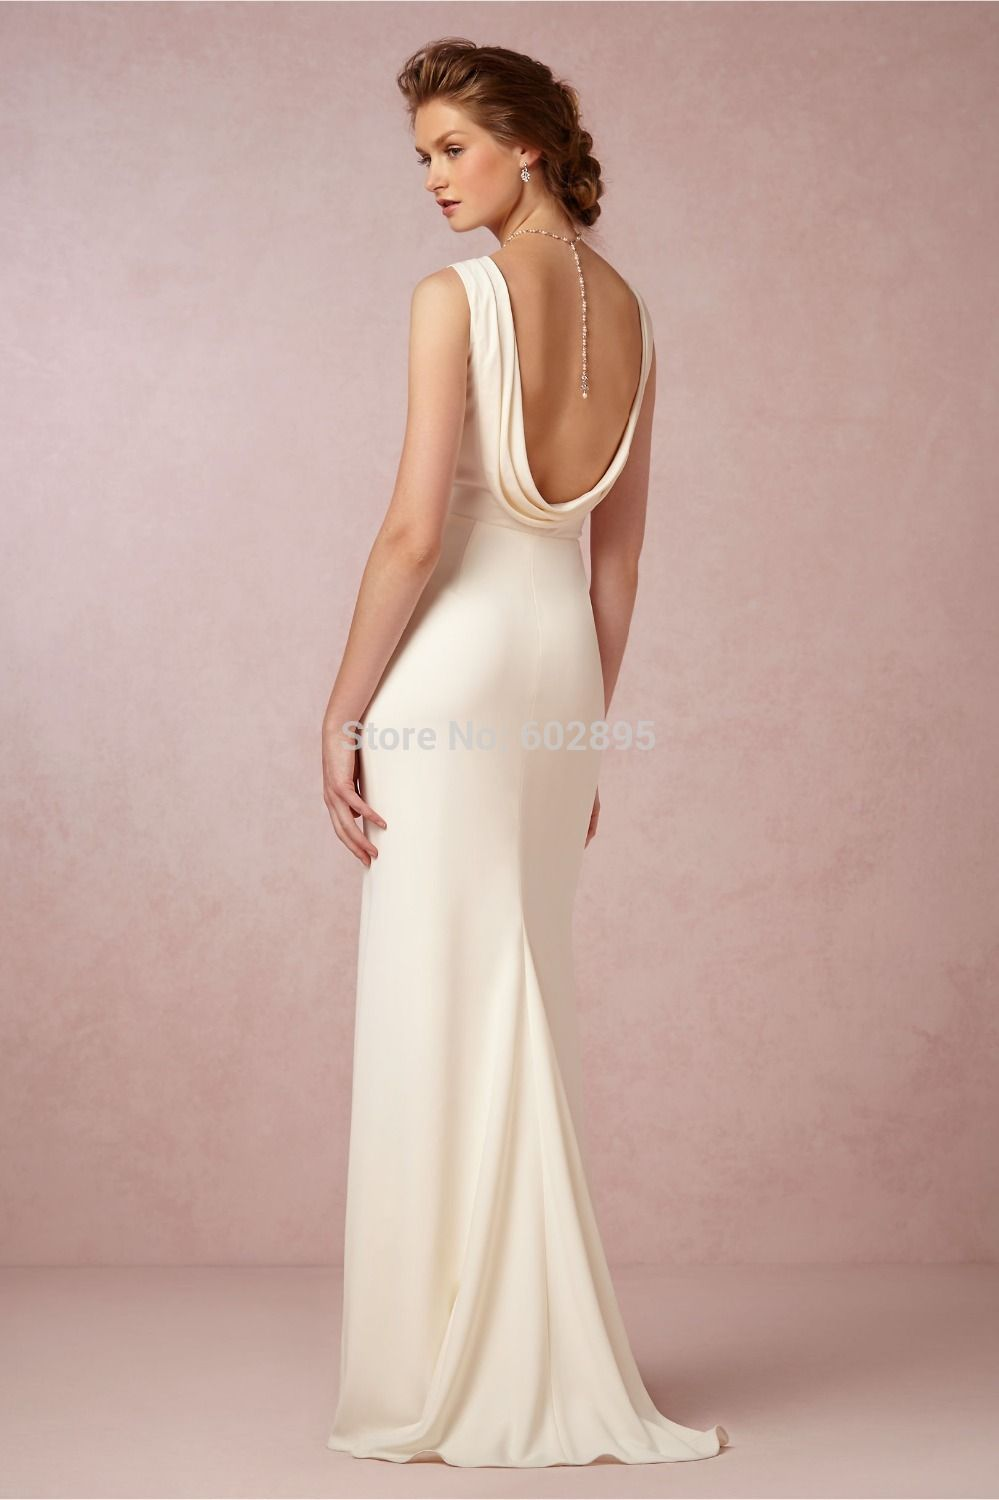 Find More Wedding Dresses Information about 2015 Exquisite draped ...